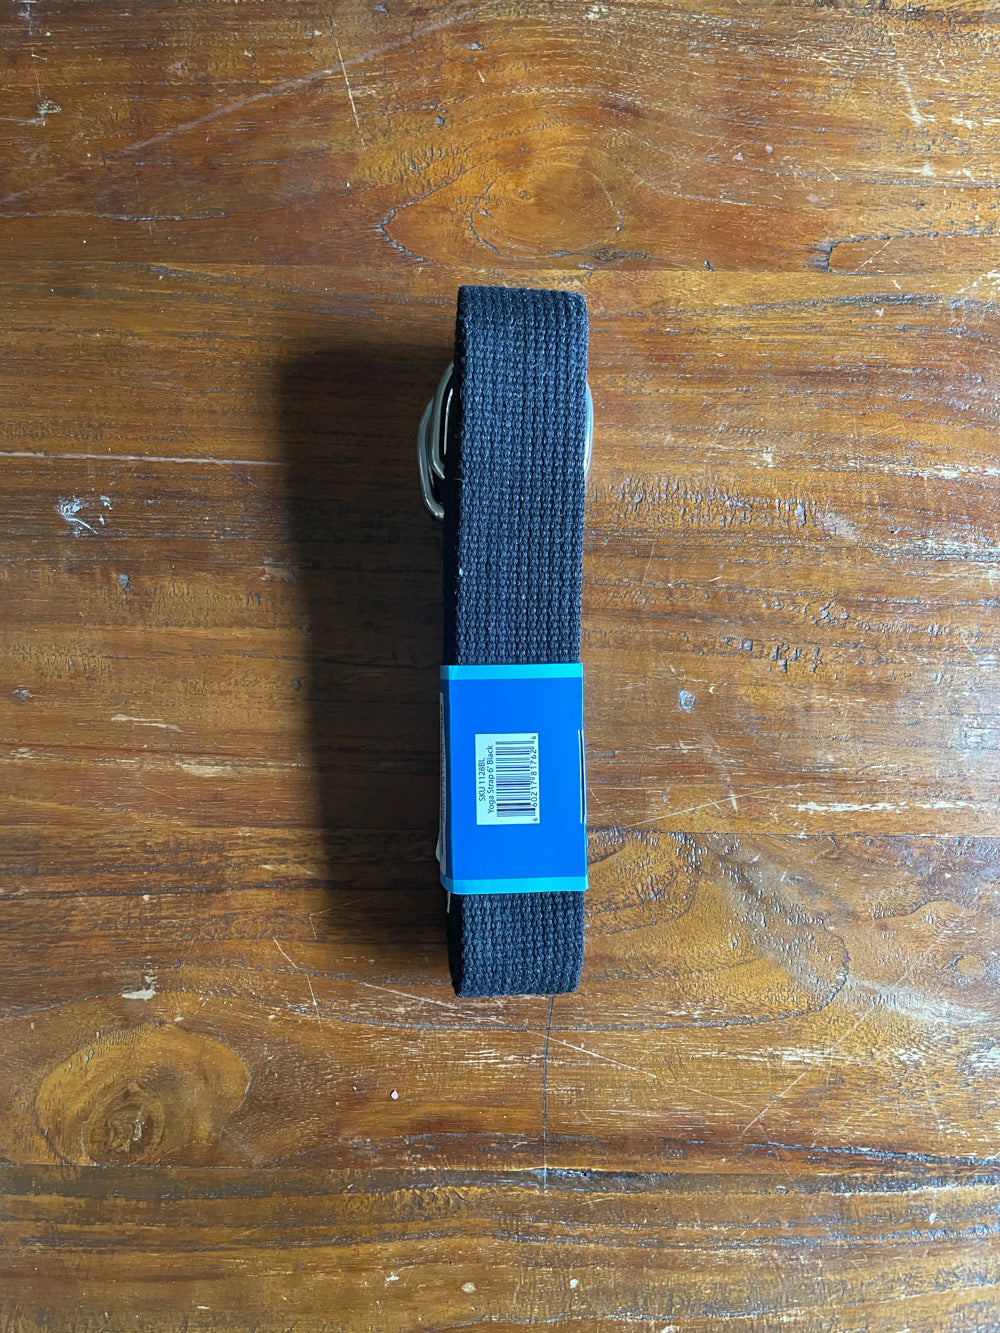 [Wai Lana] Others: Yoga Strap